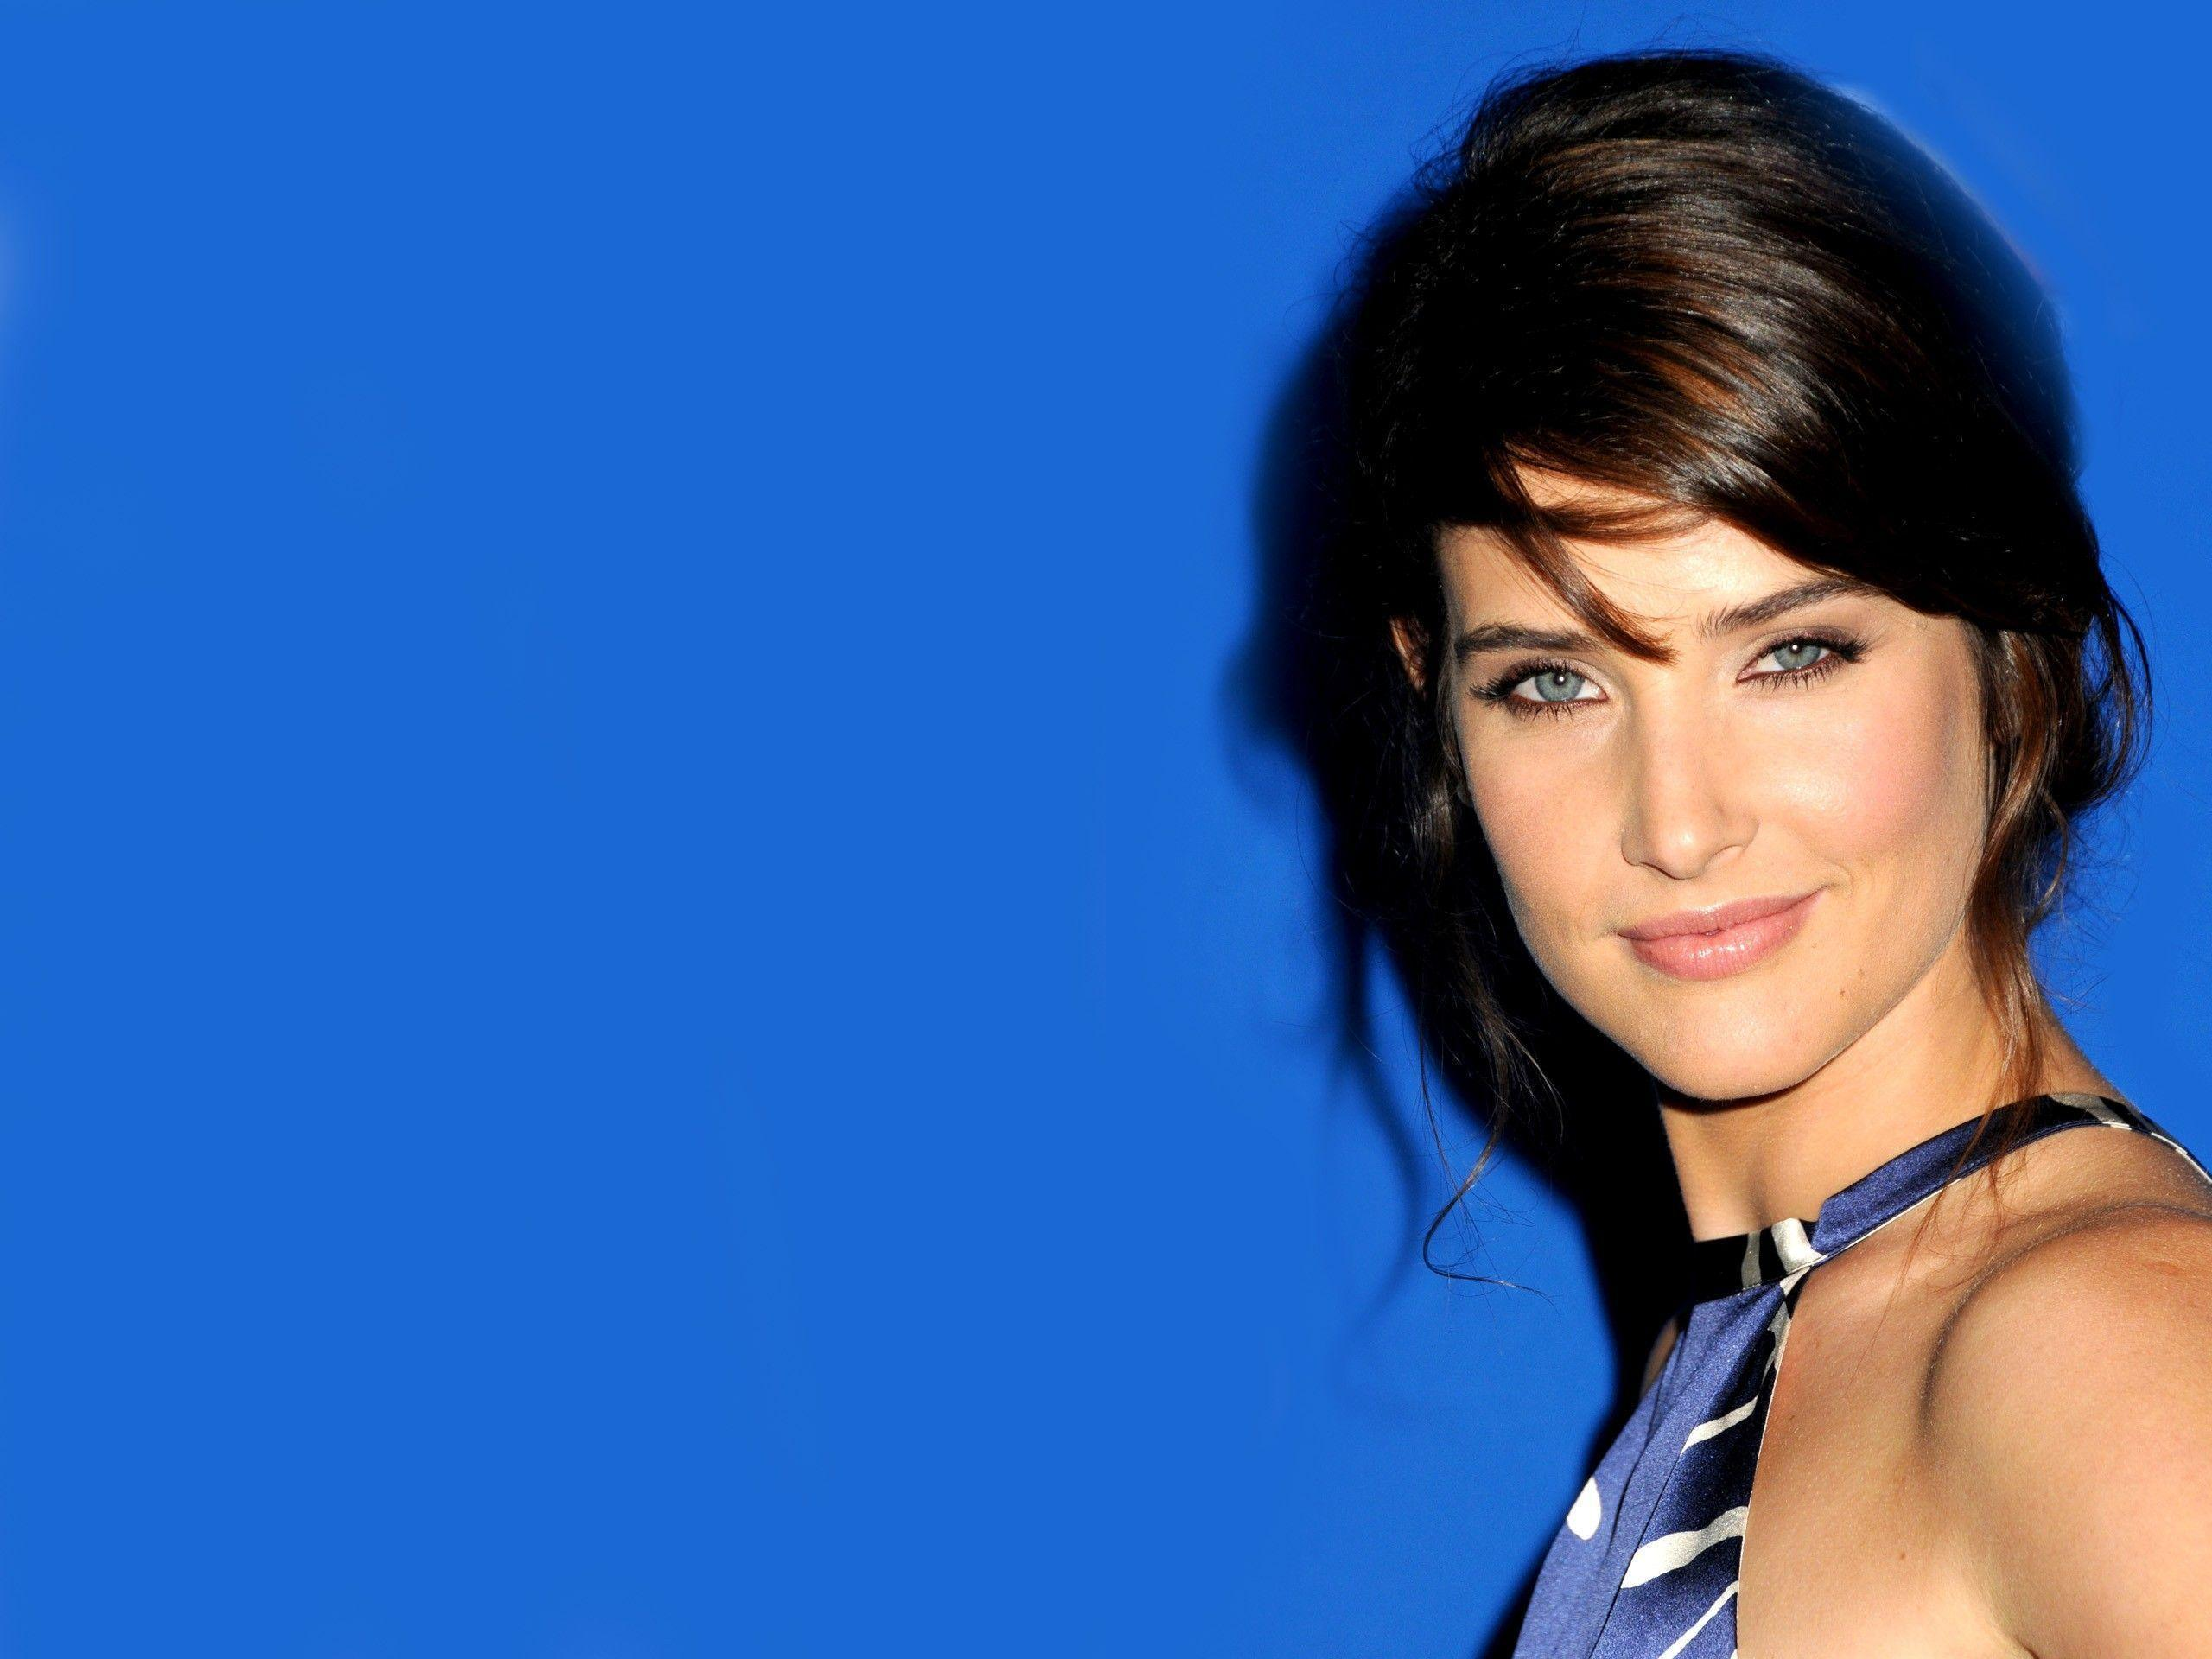 cobie smulders wallpapers - photo #6